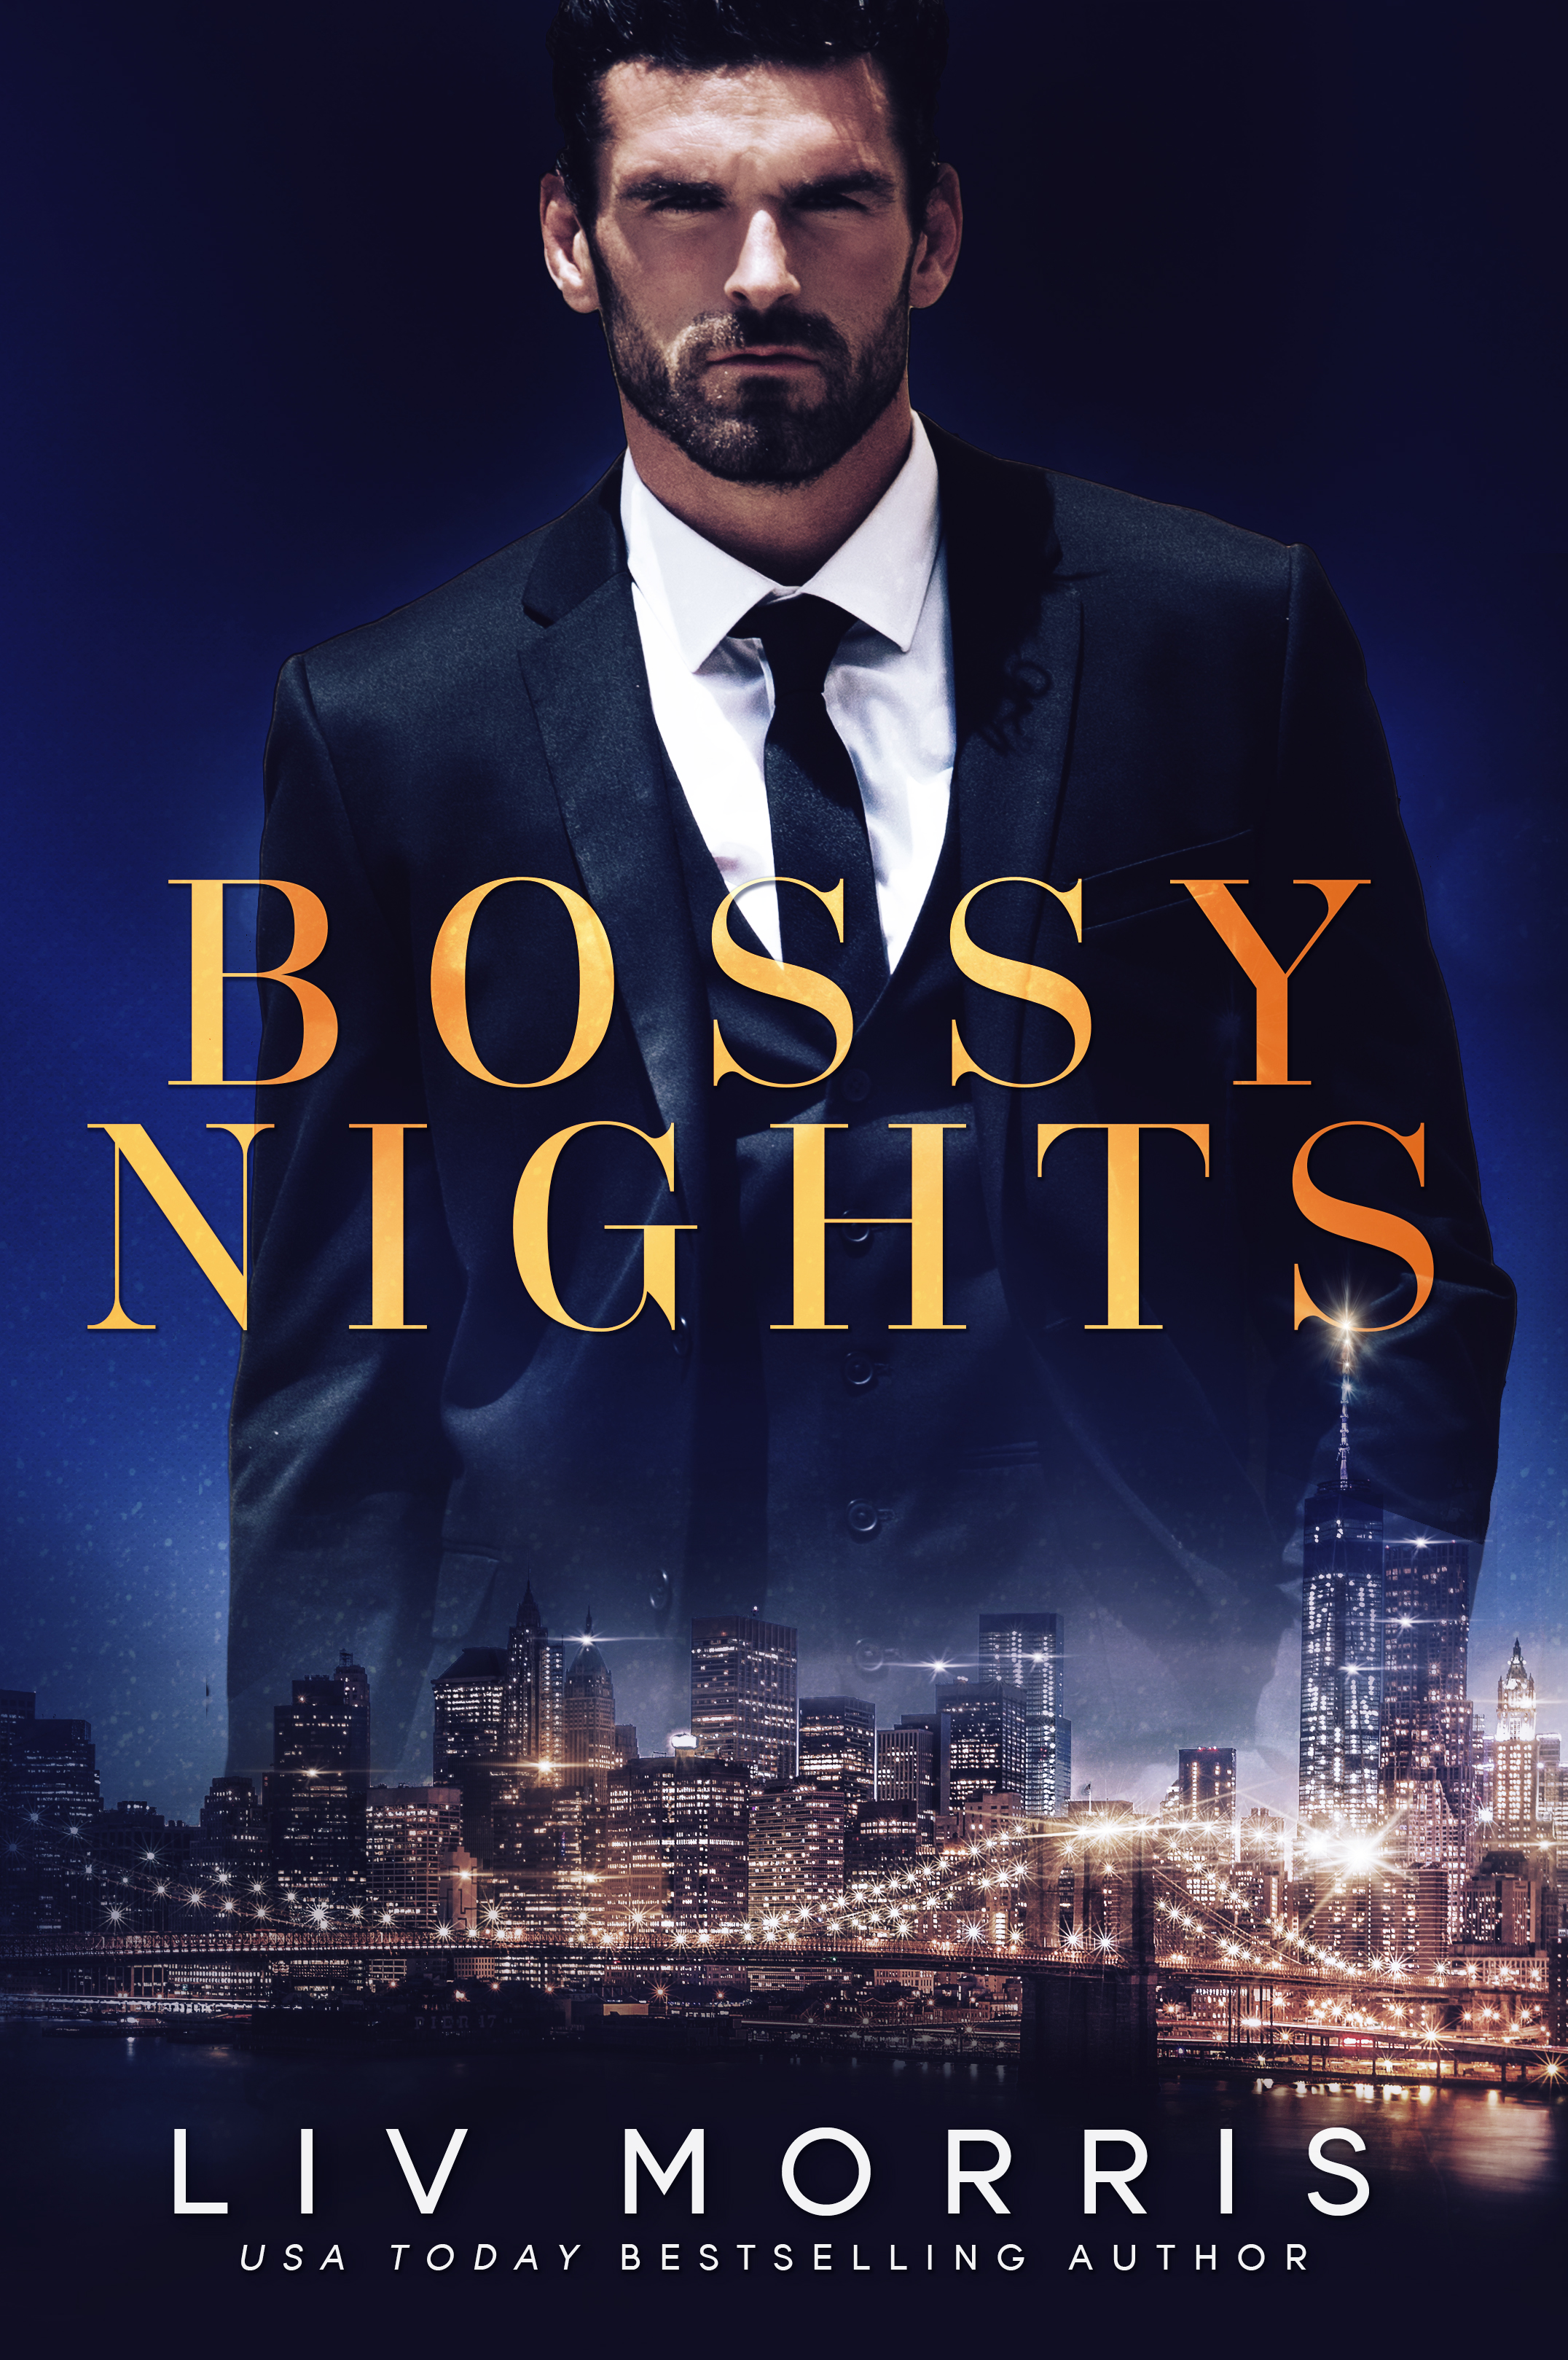 LMBossyNightsBookCover6x9_HIGH-NEW